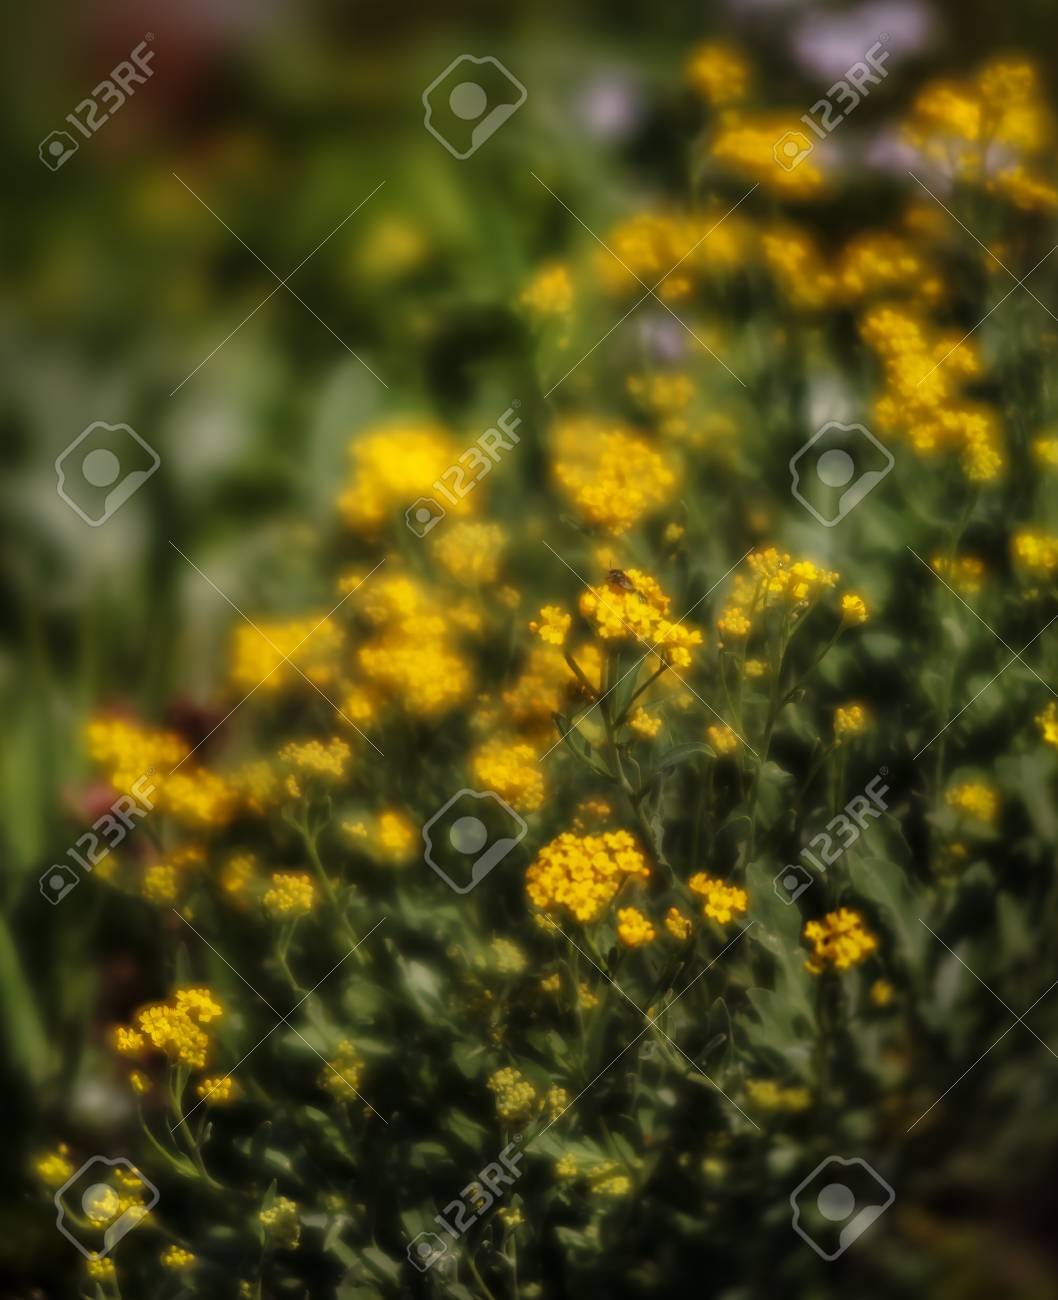 Soft Focus Image Of Small Yellow Flowers Of Aurinia Saxatilis In The